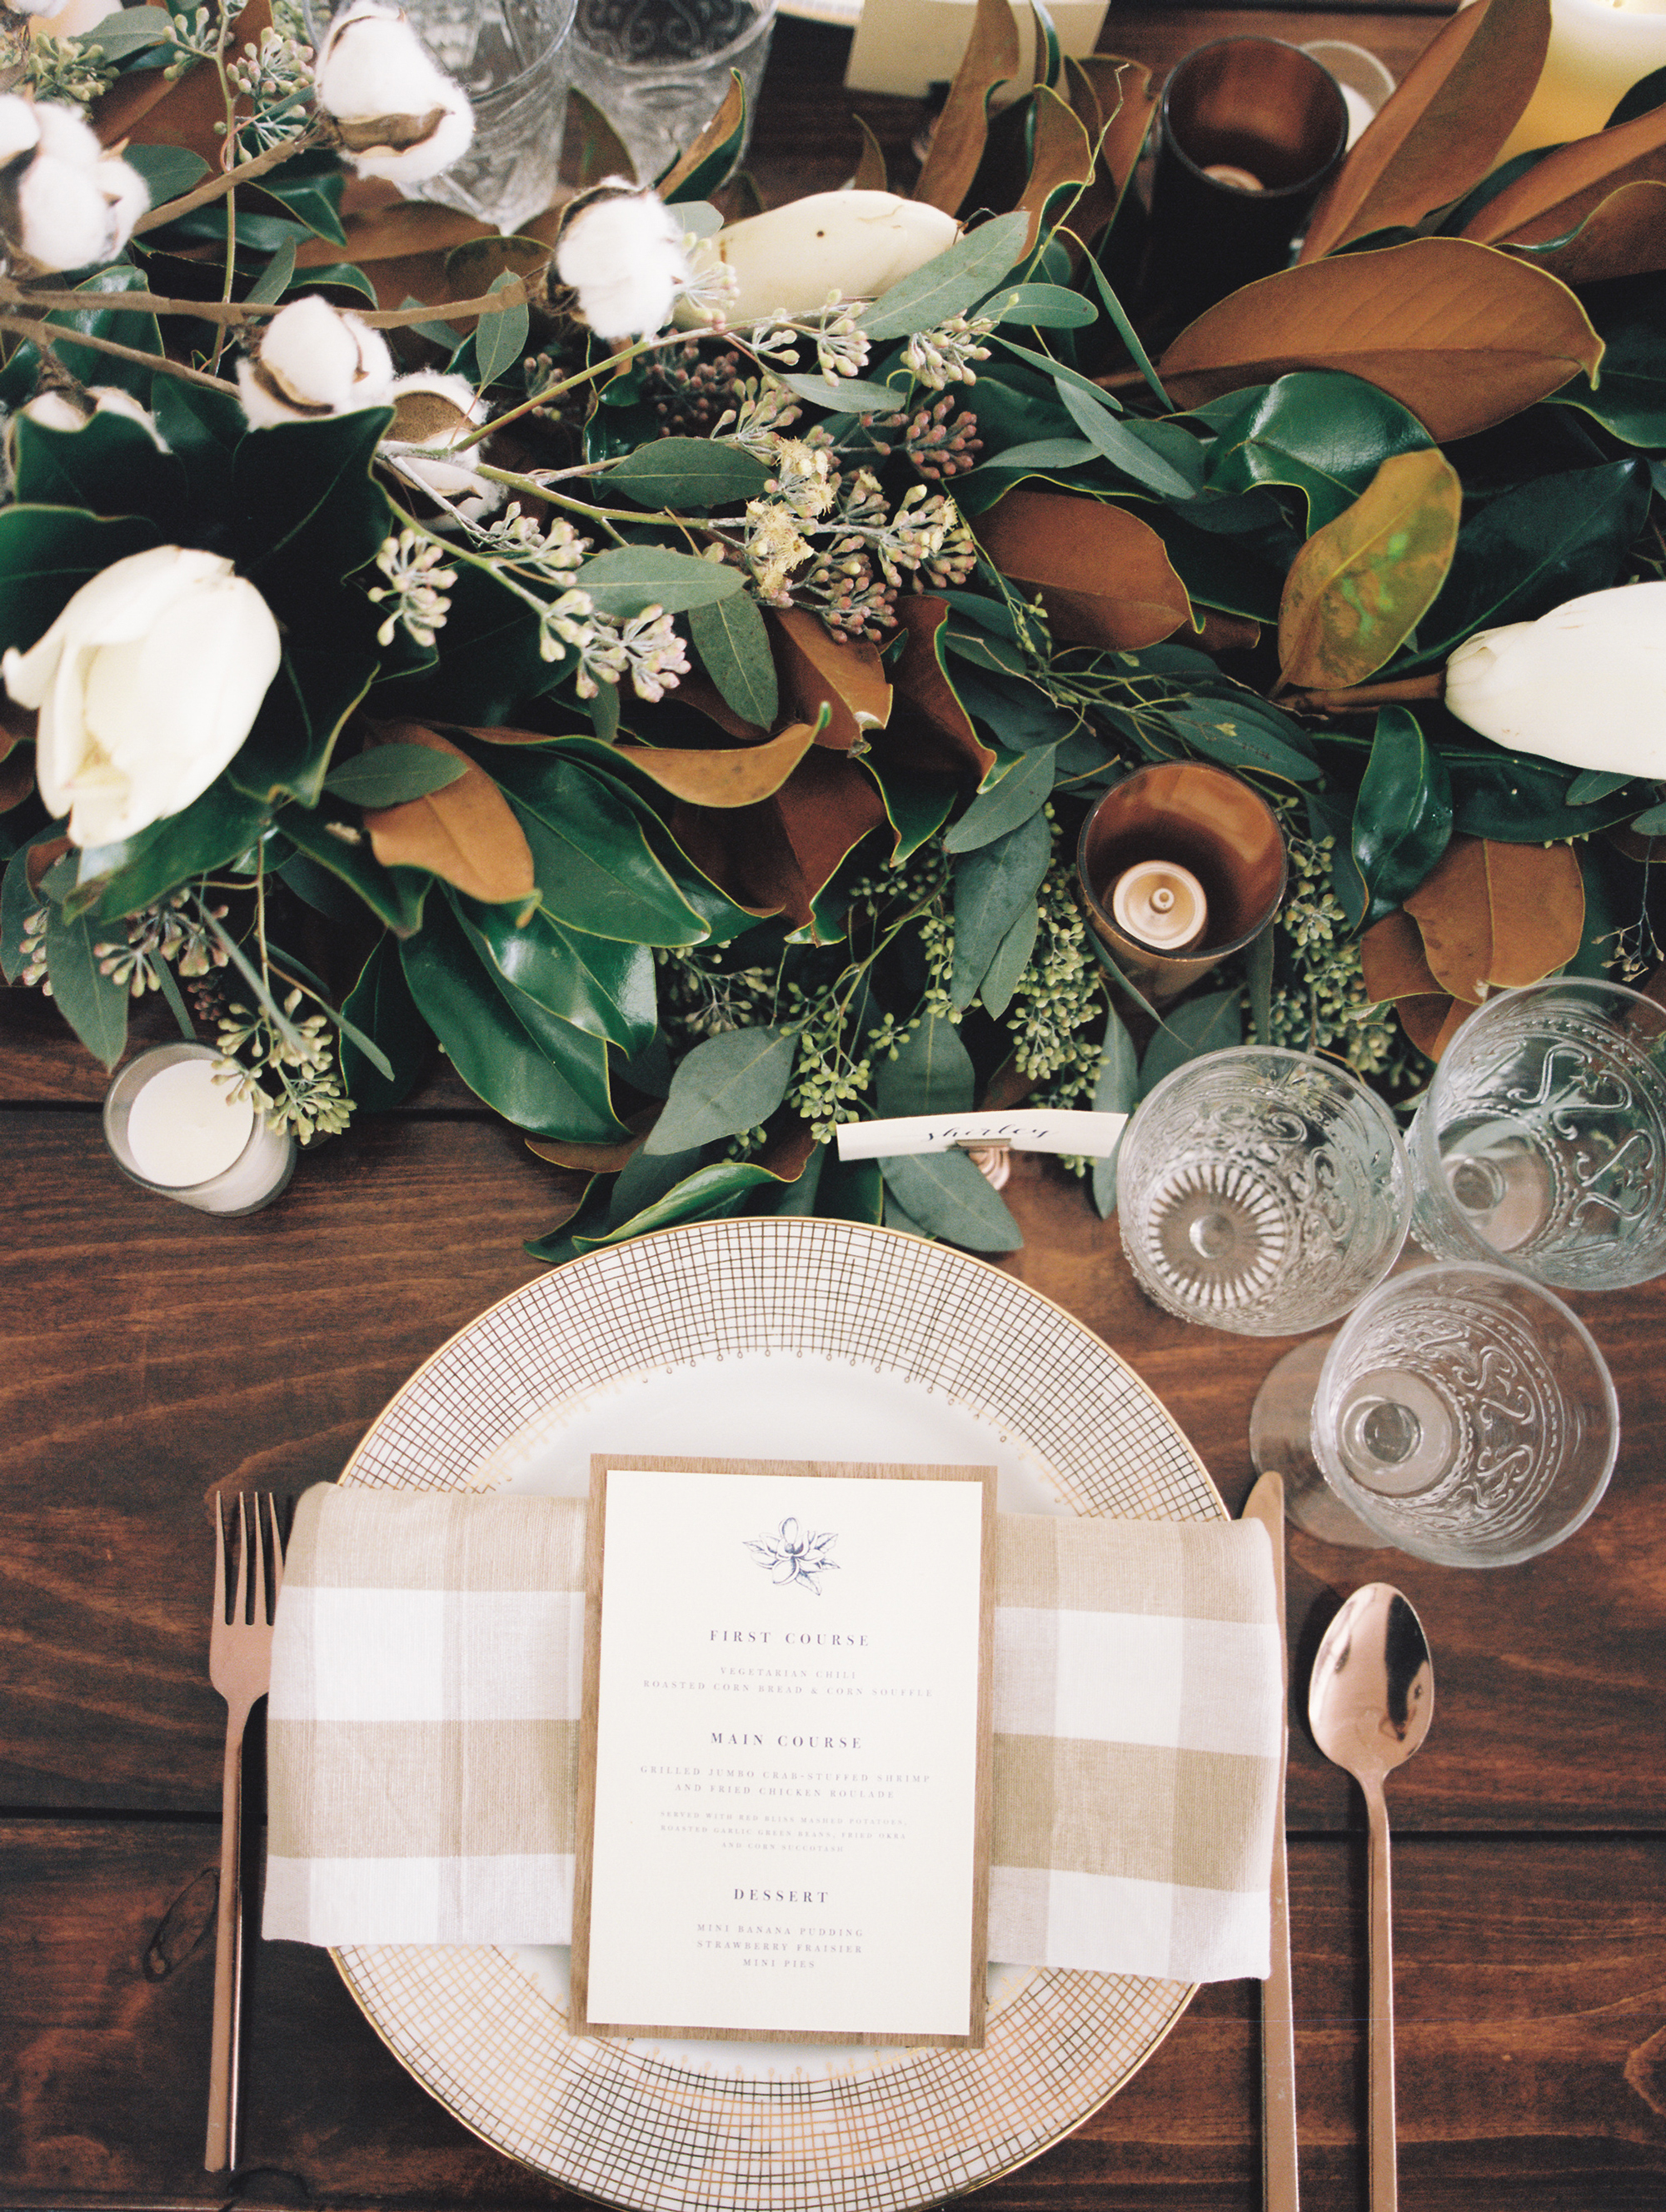 One Couple's Refined Fall Wedding at the Bride's Family Home in Virginia